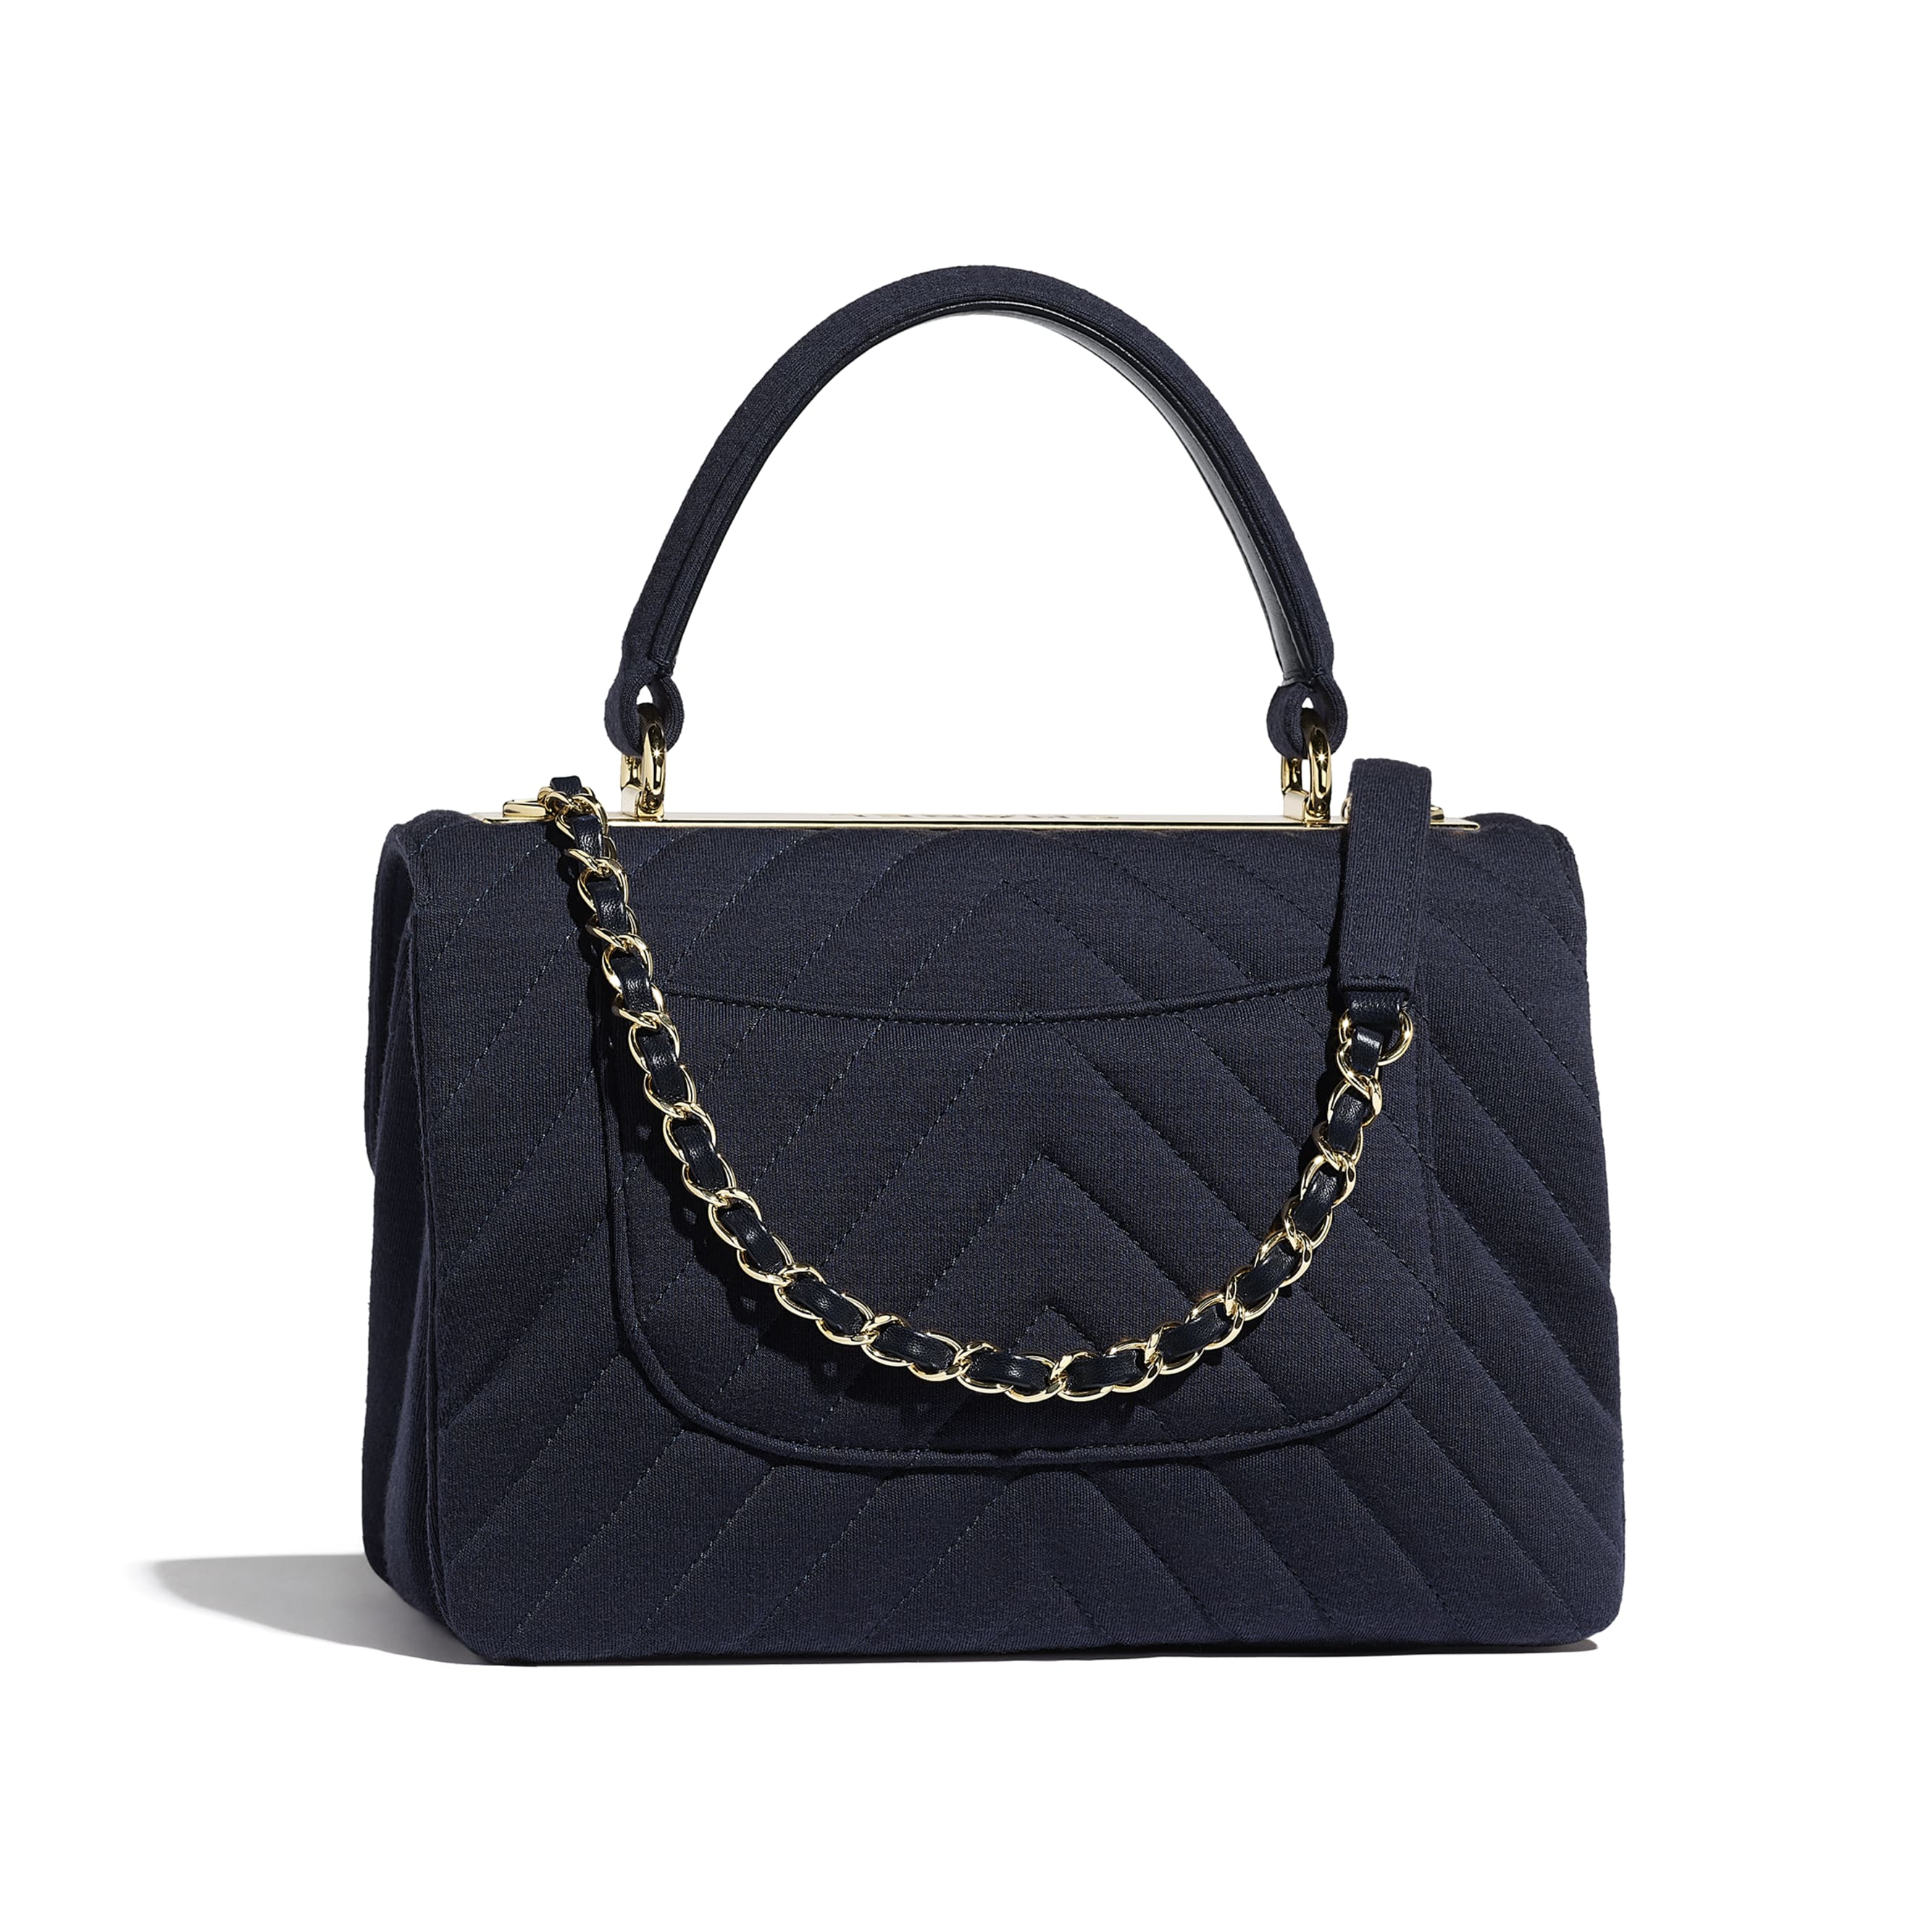 Small Flap Bag with Top Handle - Navy Blue - Jersey & Gold-Tone Metal - Alternative view - see standard sized version